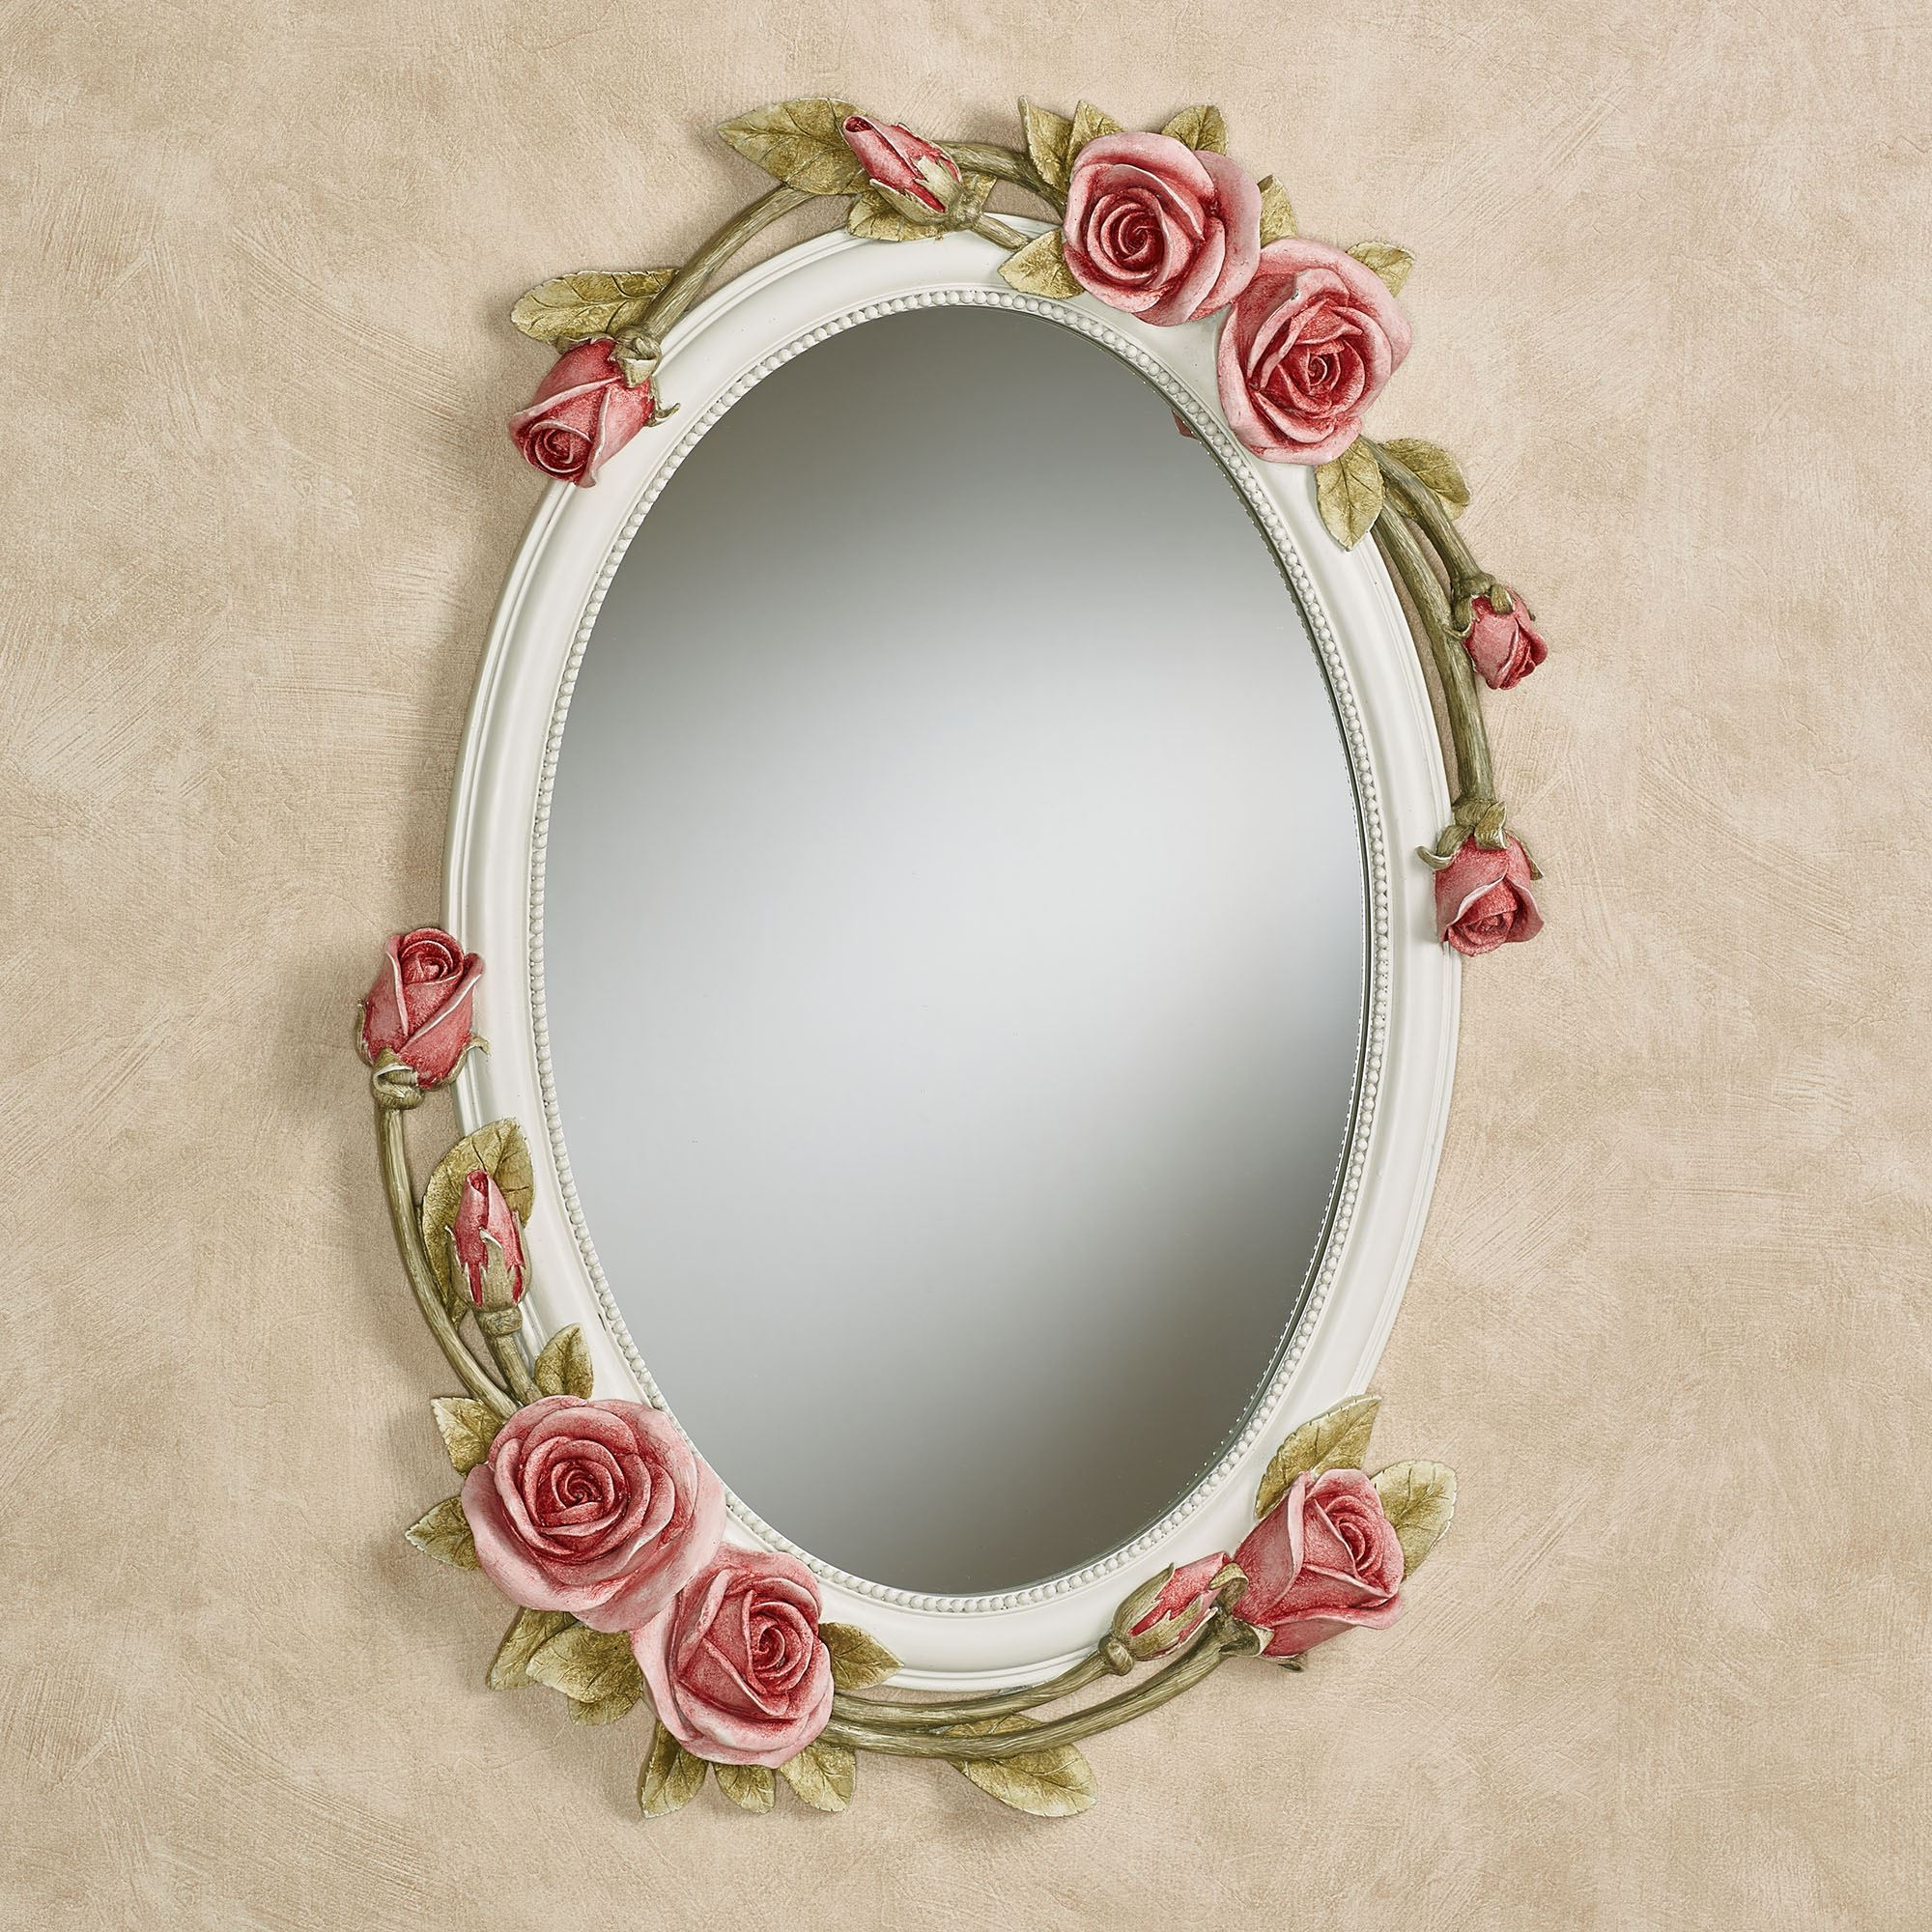 Rose Melody Rose Floral Oval Wall Mirror In Most Recent Oval Wall Mirrors (View 12 of 20)